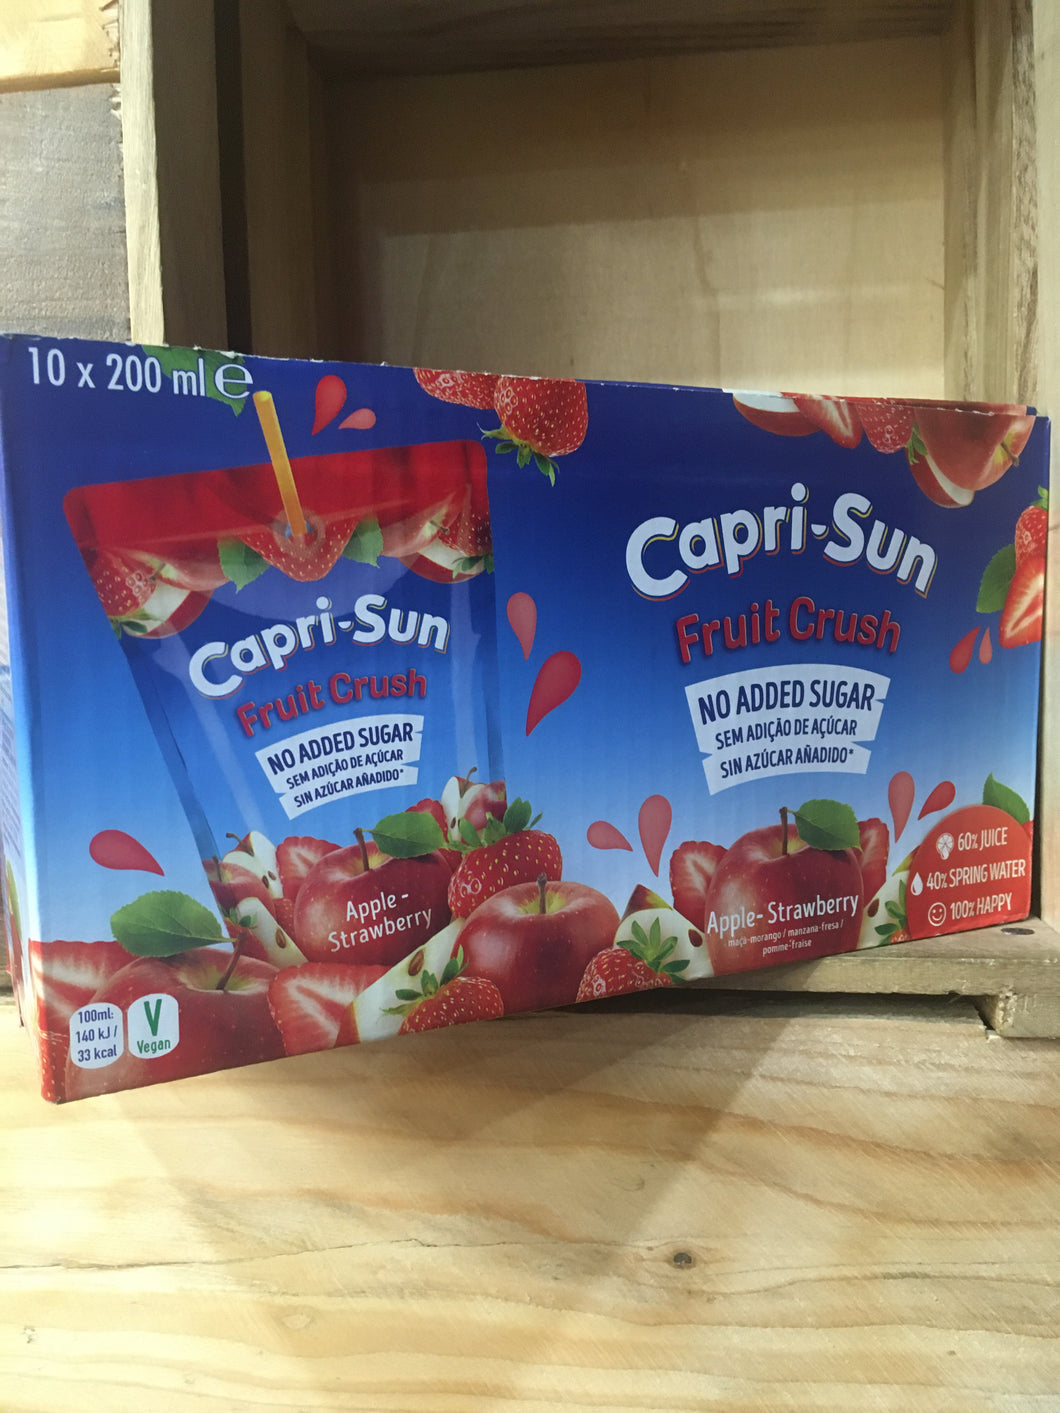 Capri-Sun Apple & Strawberry 10x200ml